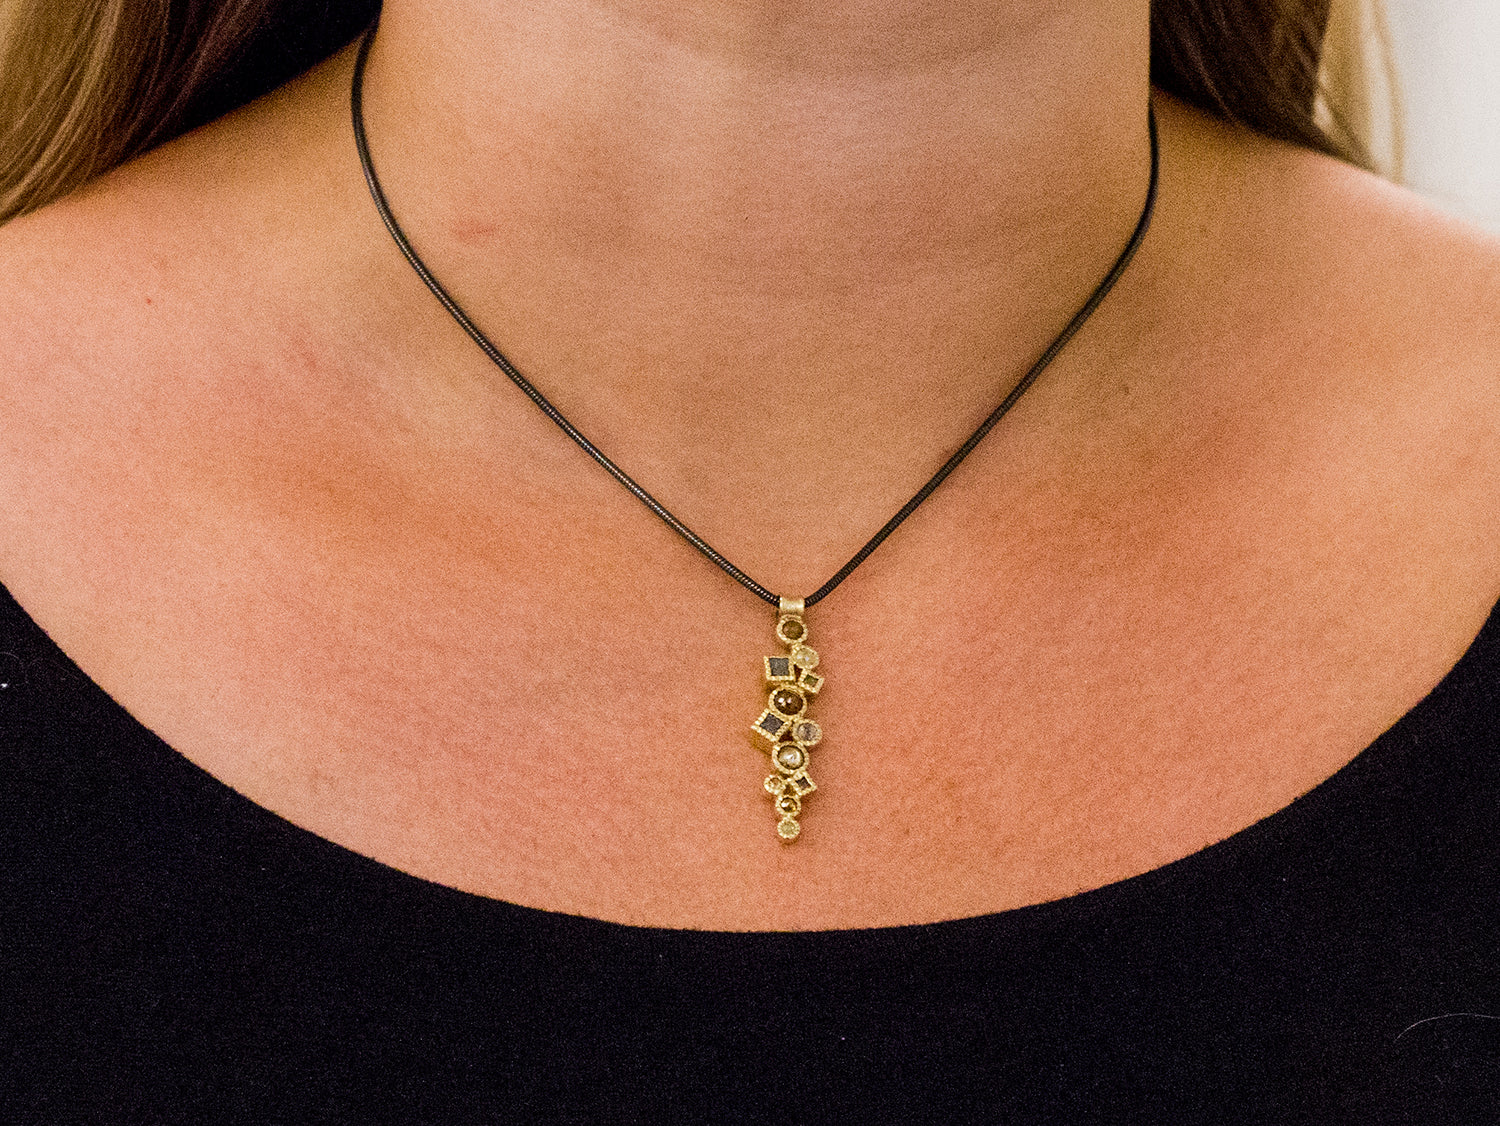 14K Yellow Gold and Rose Cut Diamond Pendant Necklace In Washington DC